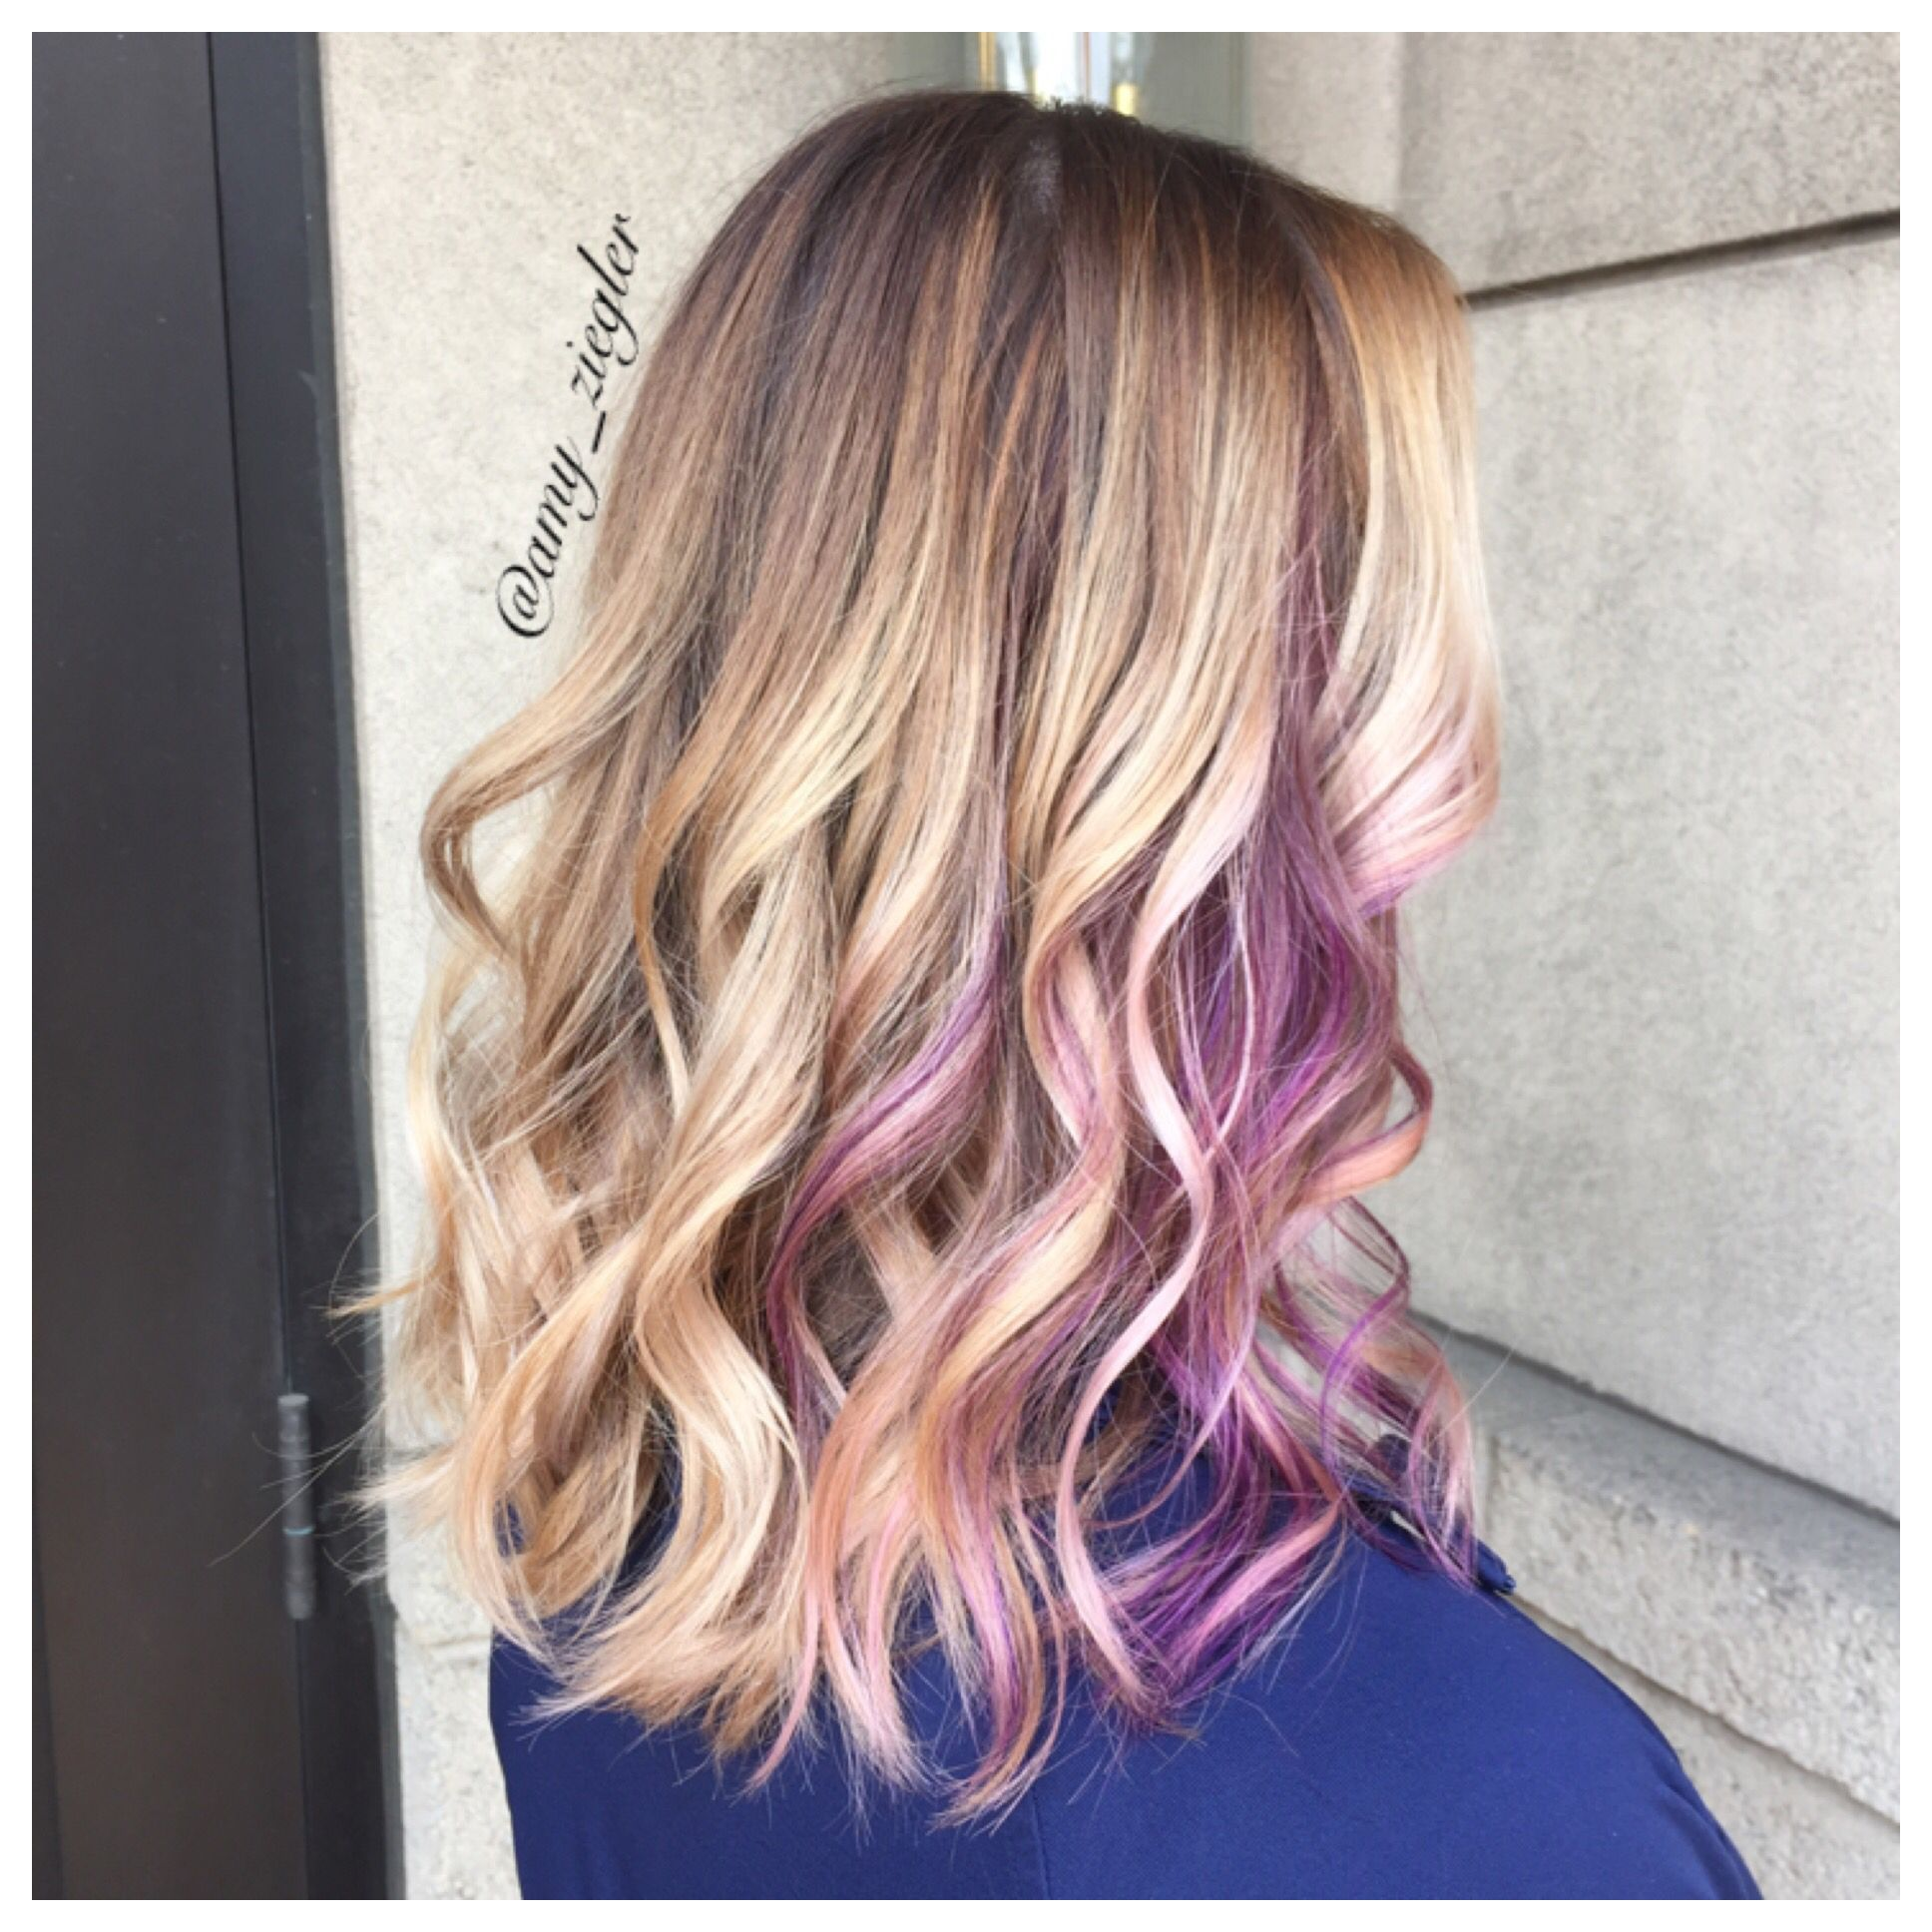 Blonde with purple yes pinterest blondes hair coloring and blonde balayage and purple peekaboo by askforamy versatilestrands pmusecretfo Image collections